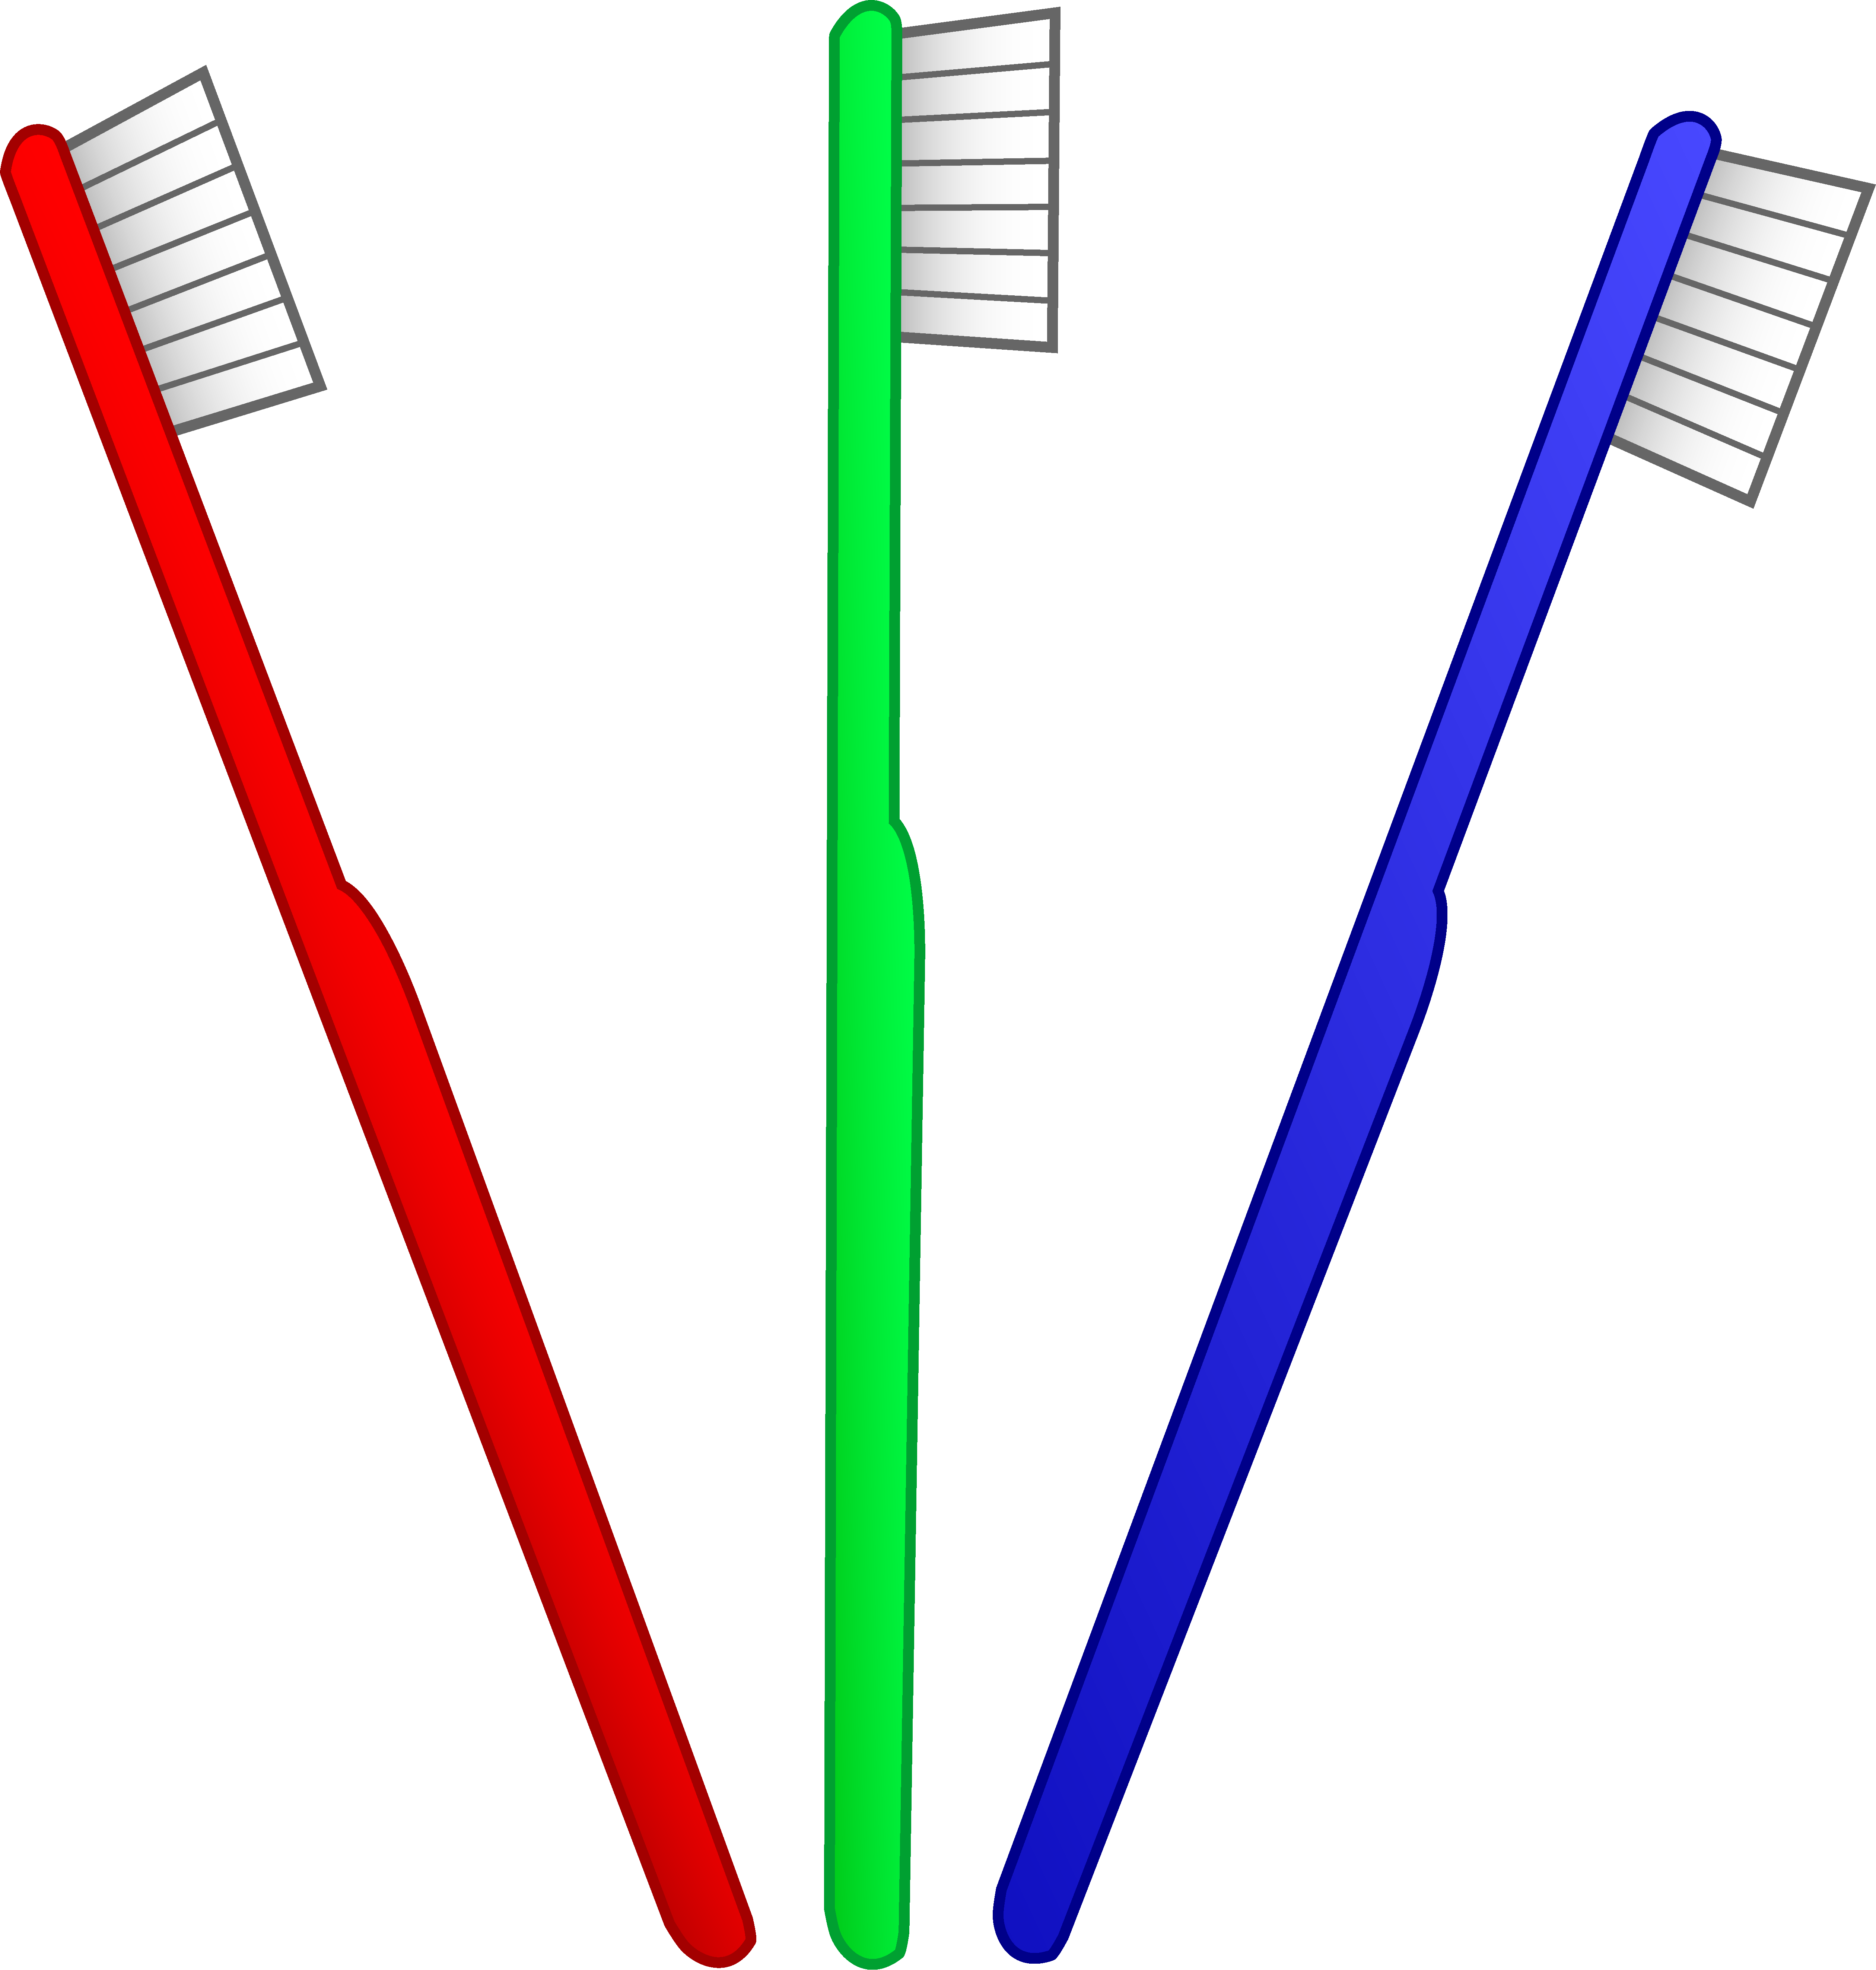 Three Toothbrushes.